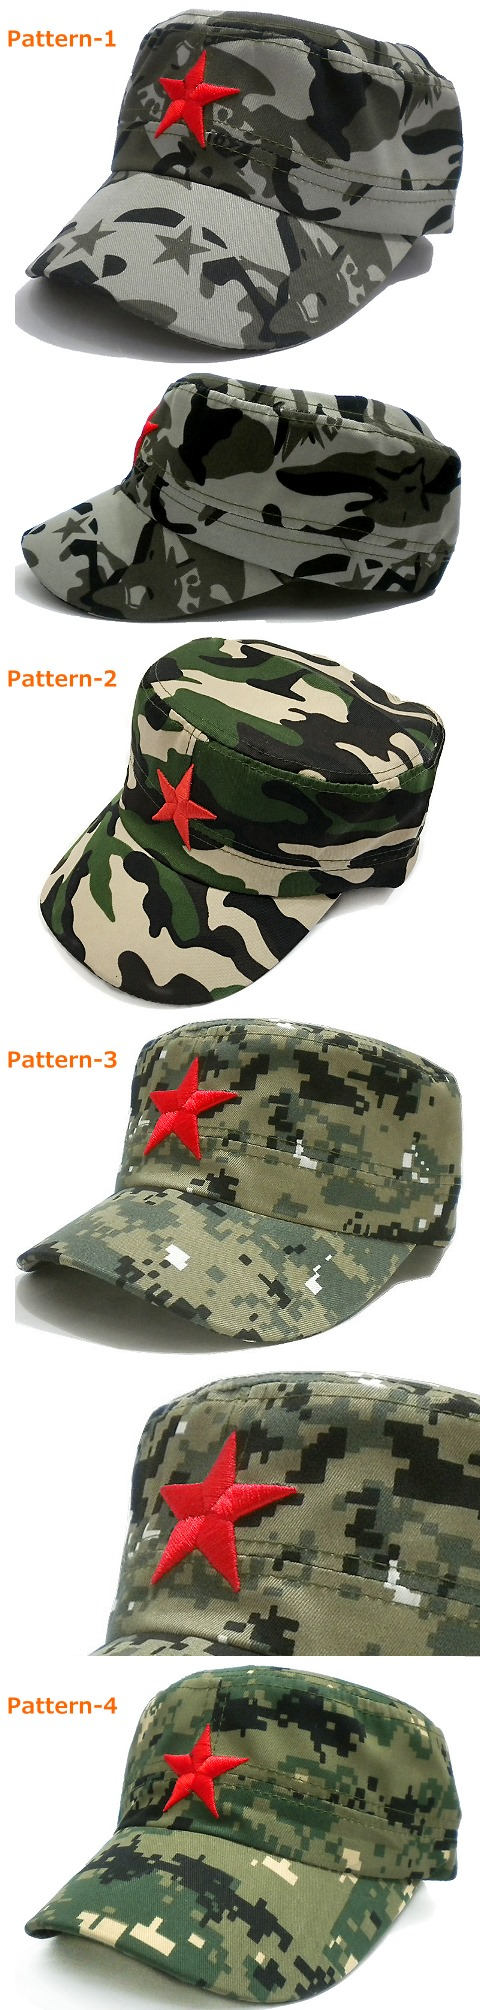 People's Liberation Army Cap w/ Red Star